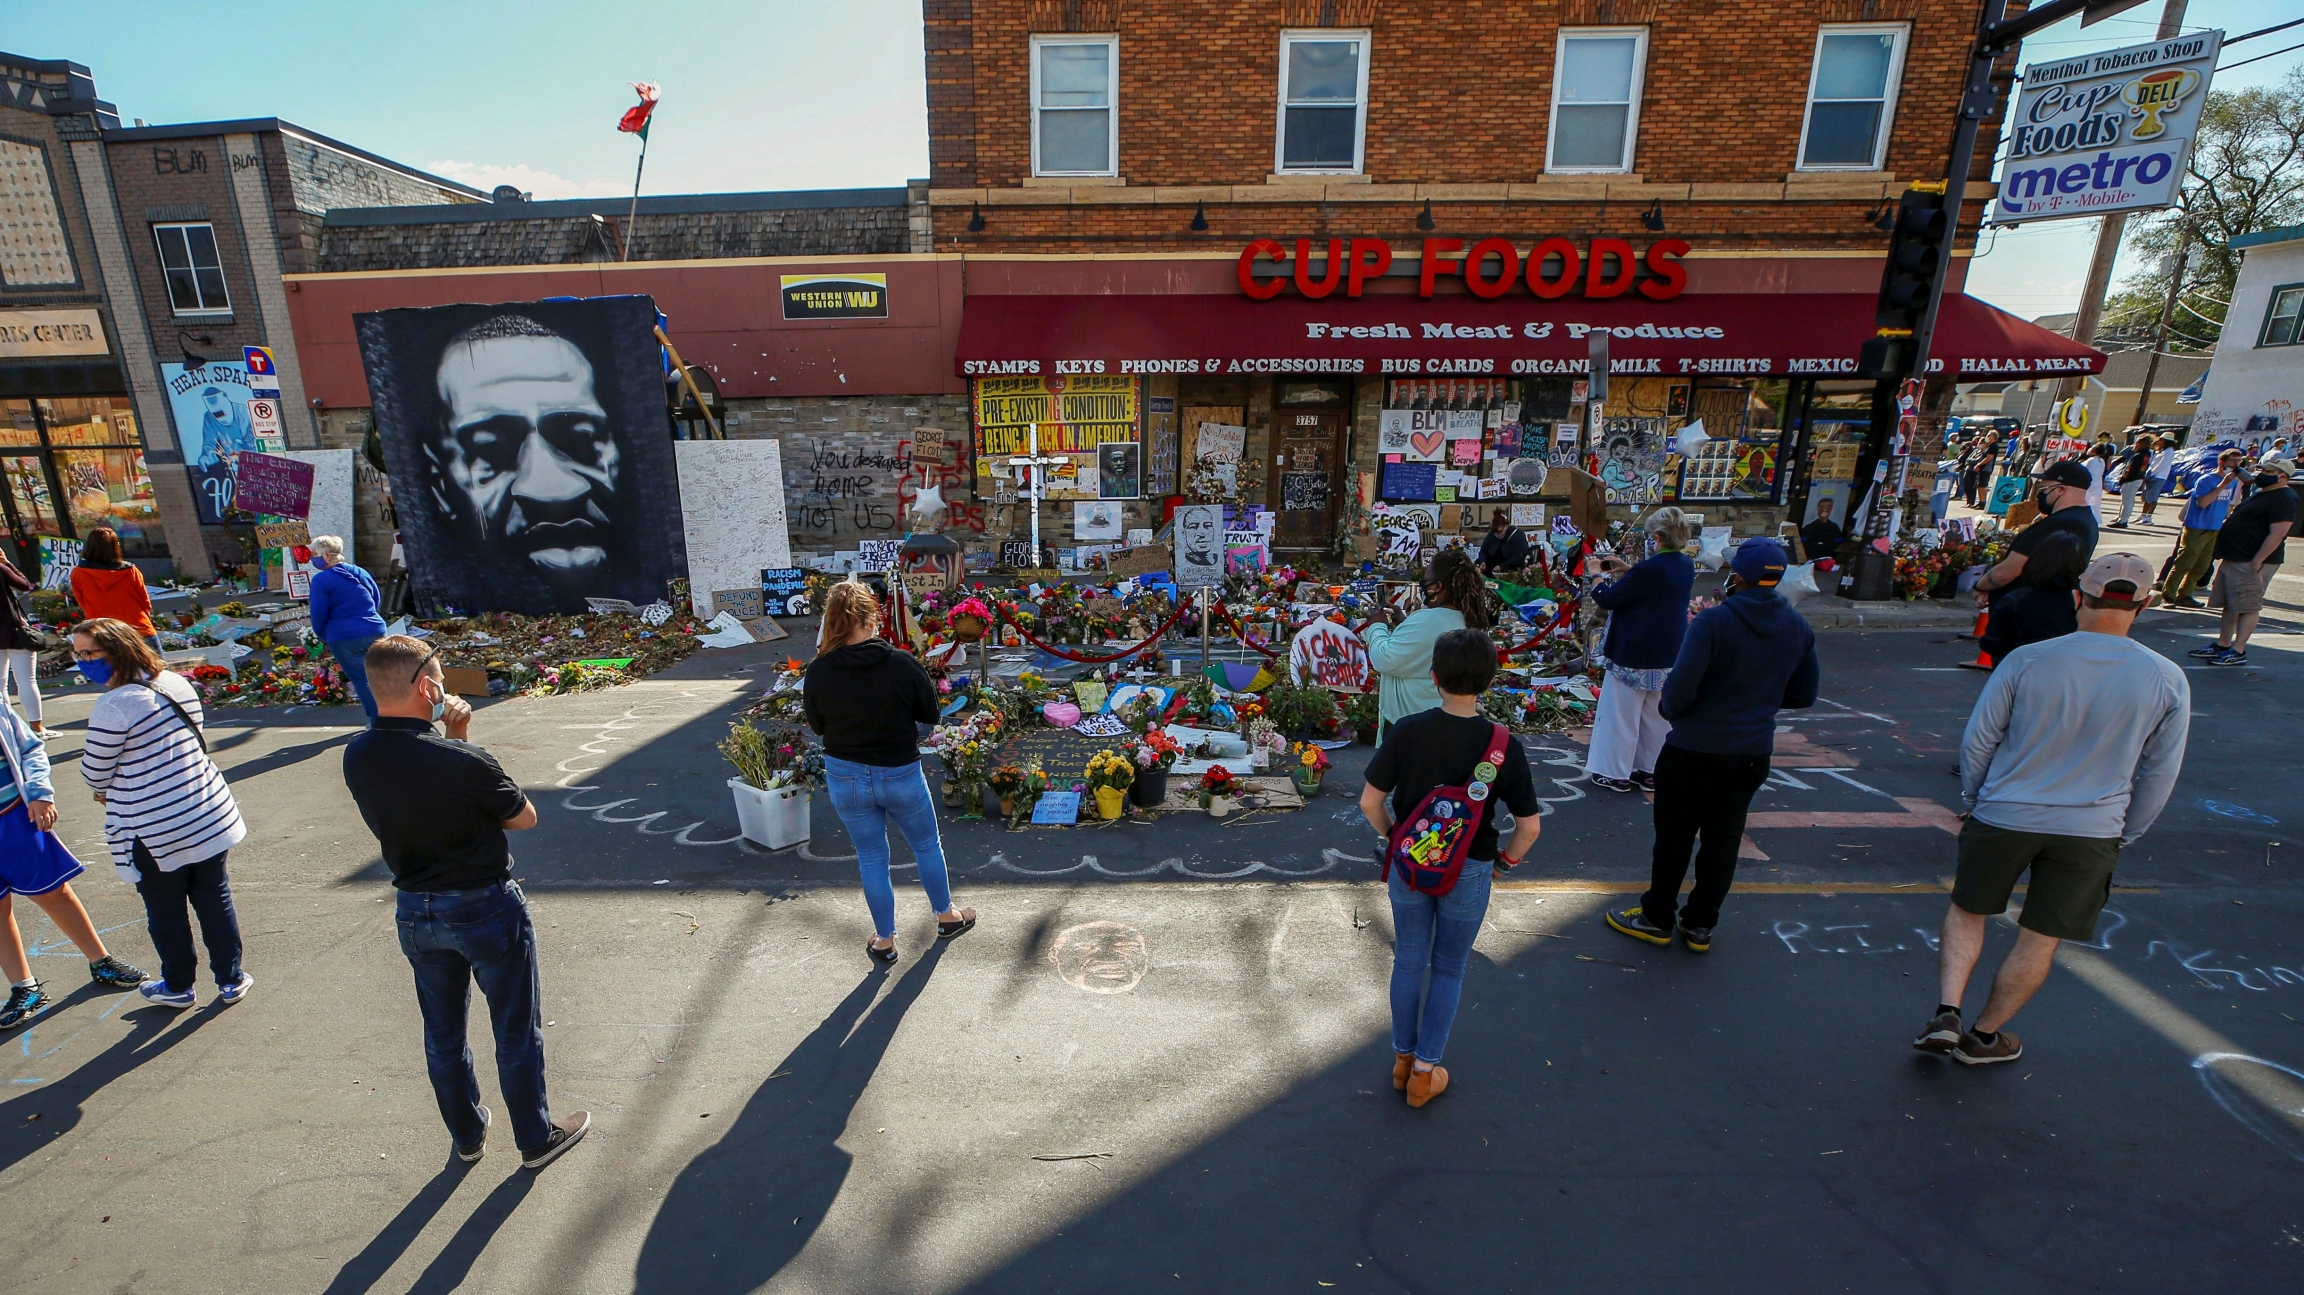 Visitors look at a memorial at the site of the arrest of George Floyd, who died while in police custody, in Minneapolis, June 14, 2020.